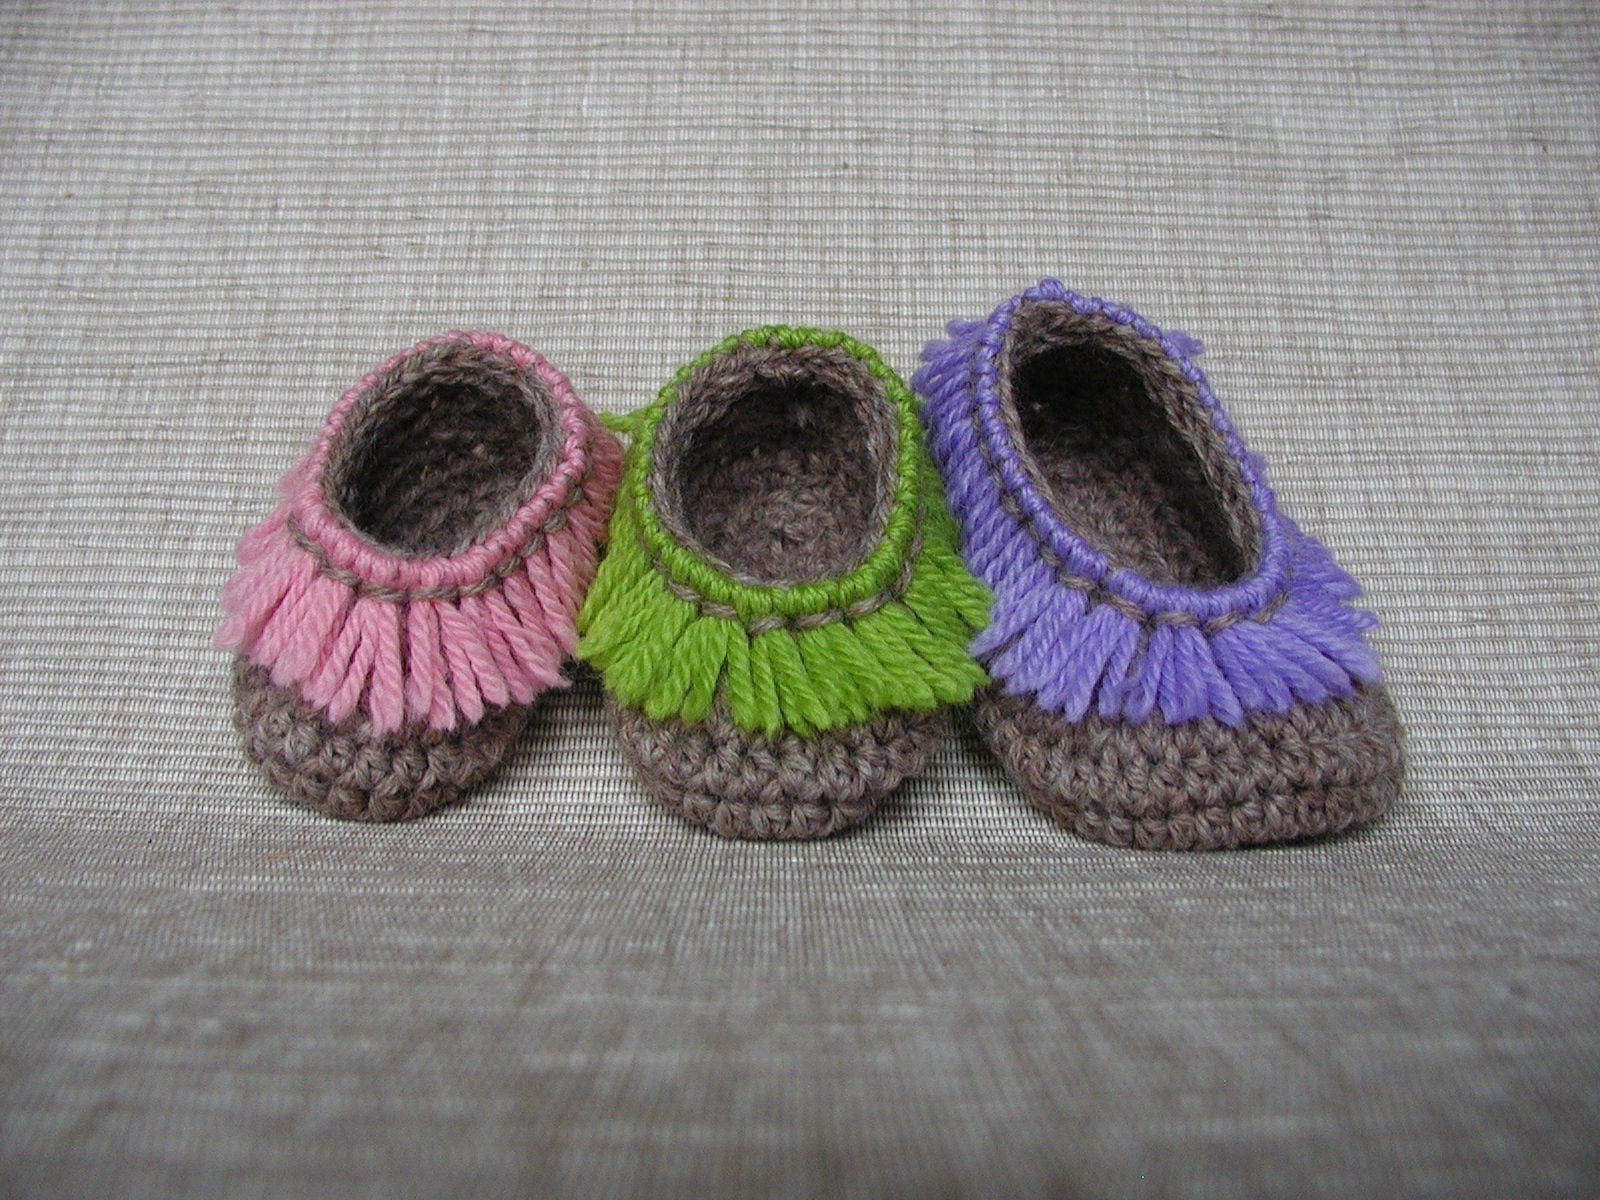 New toddler Booties Crochet Patterns – Easy Crochet Patterns All Free Crochet Patterns Of Wonderful 50 Pictures All Free Crochet Patterns